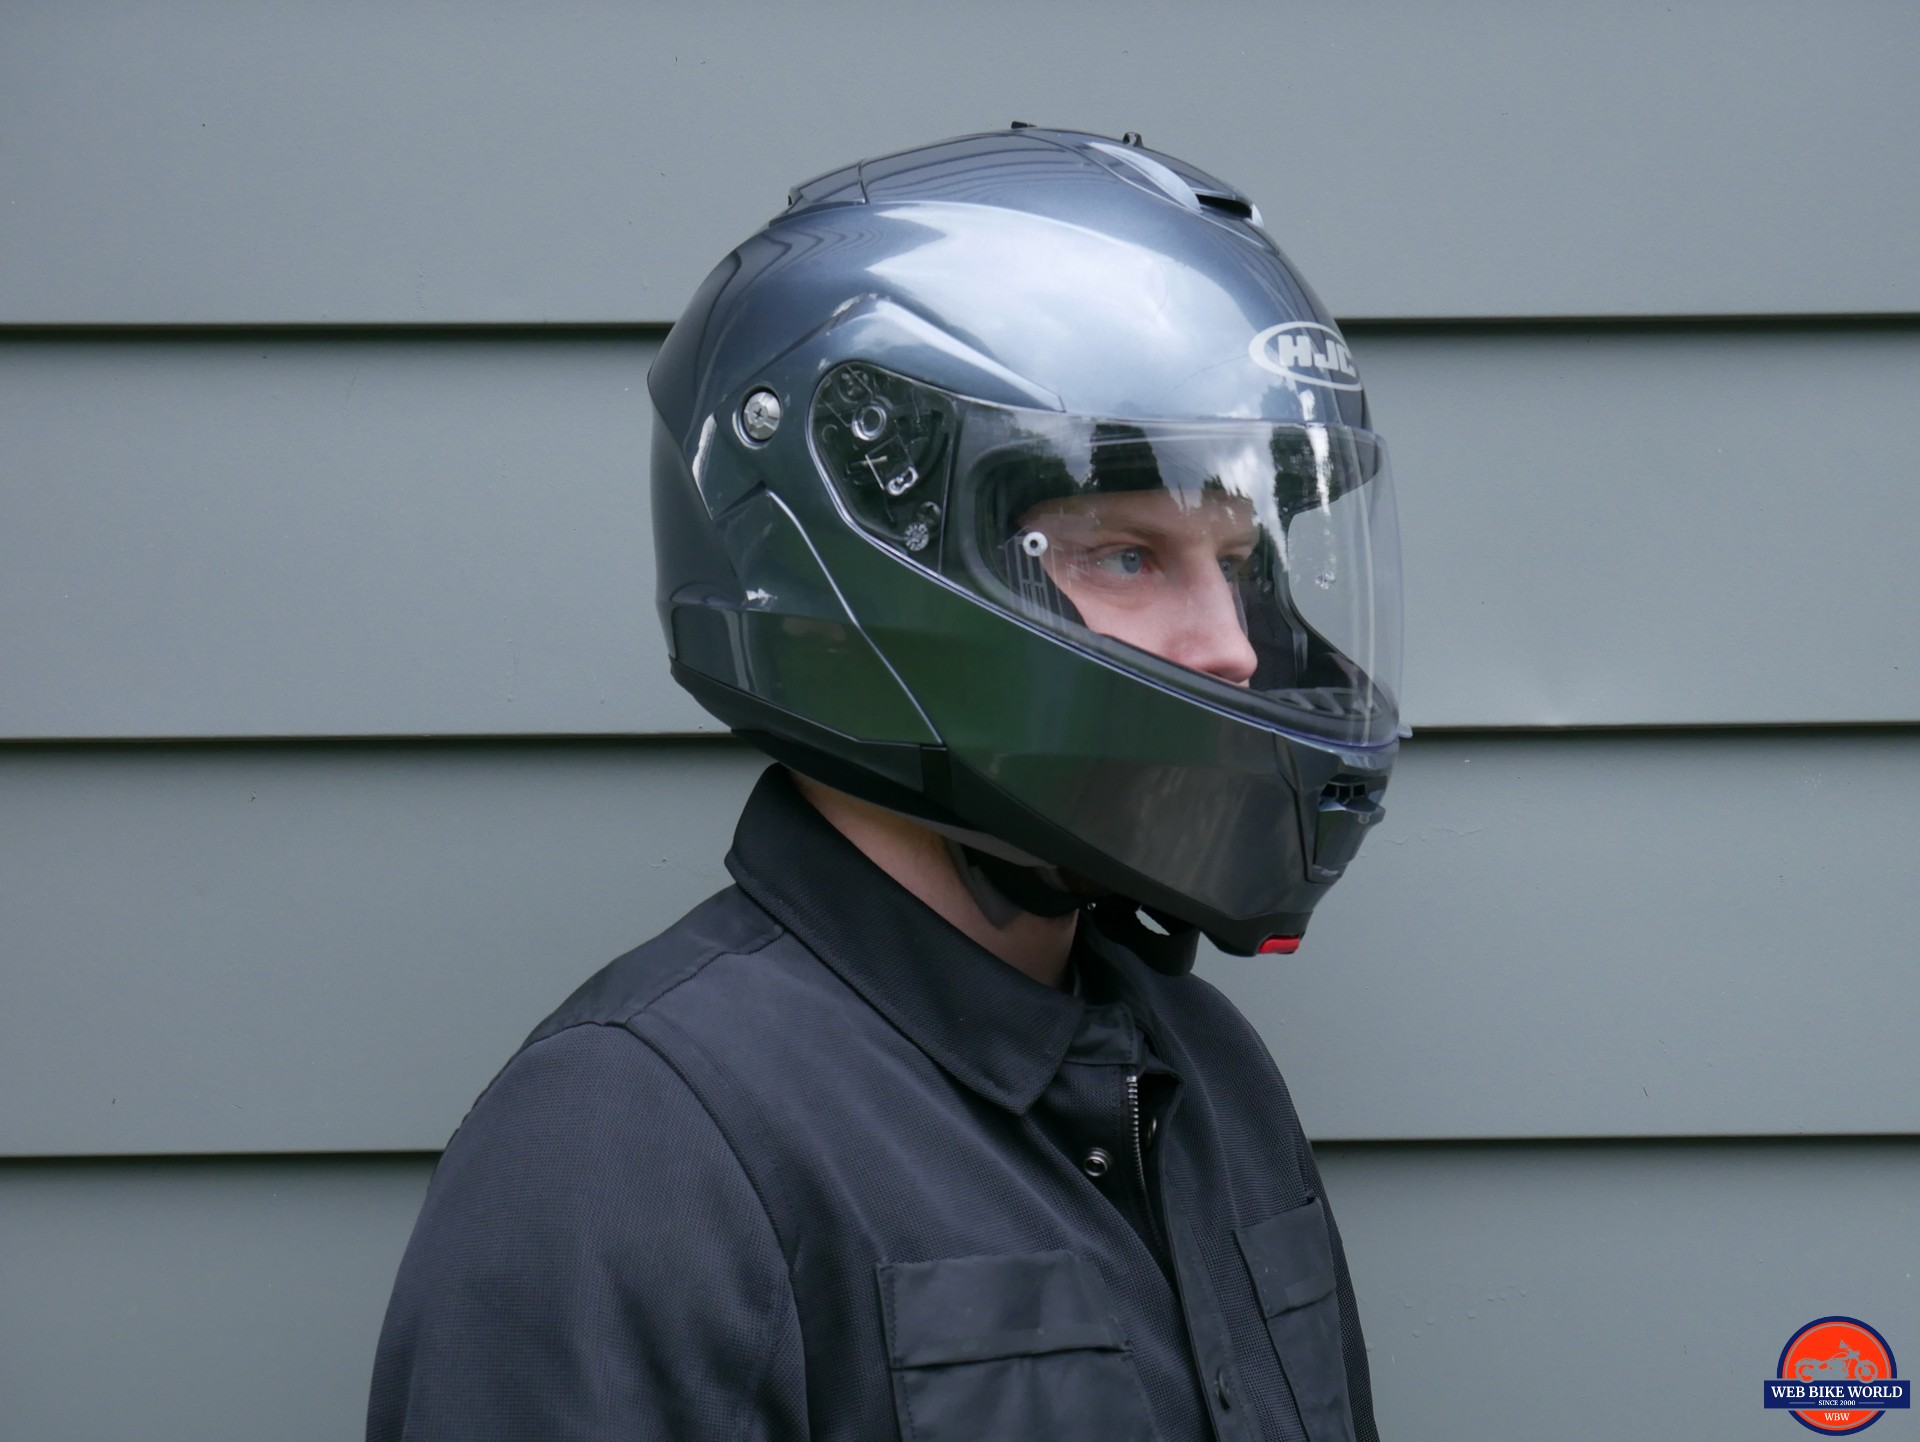 5bc5ffff 20+ Years of Motorcycle Gear & Riding Reviews | webBikeWorld